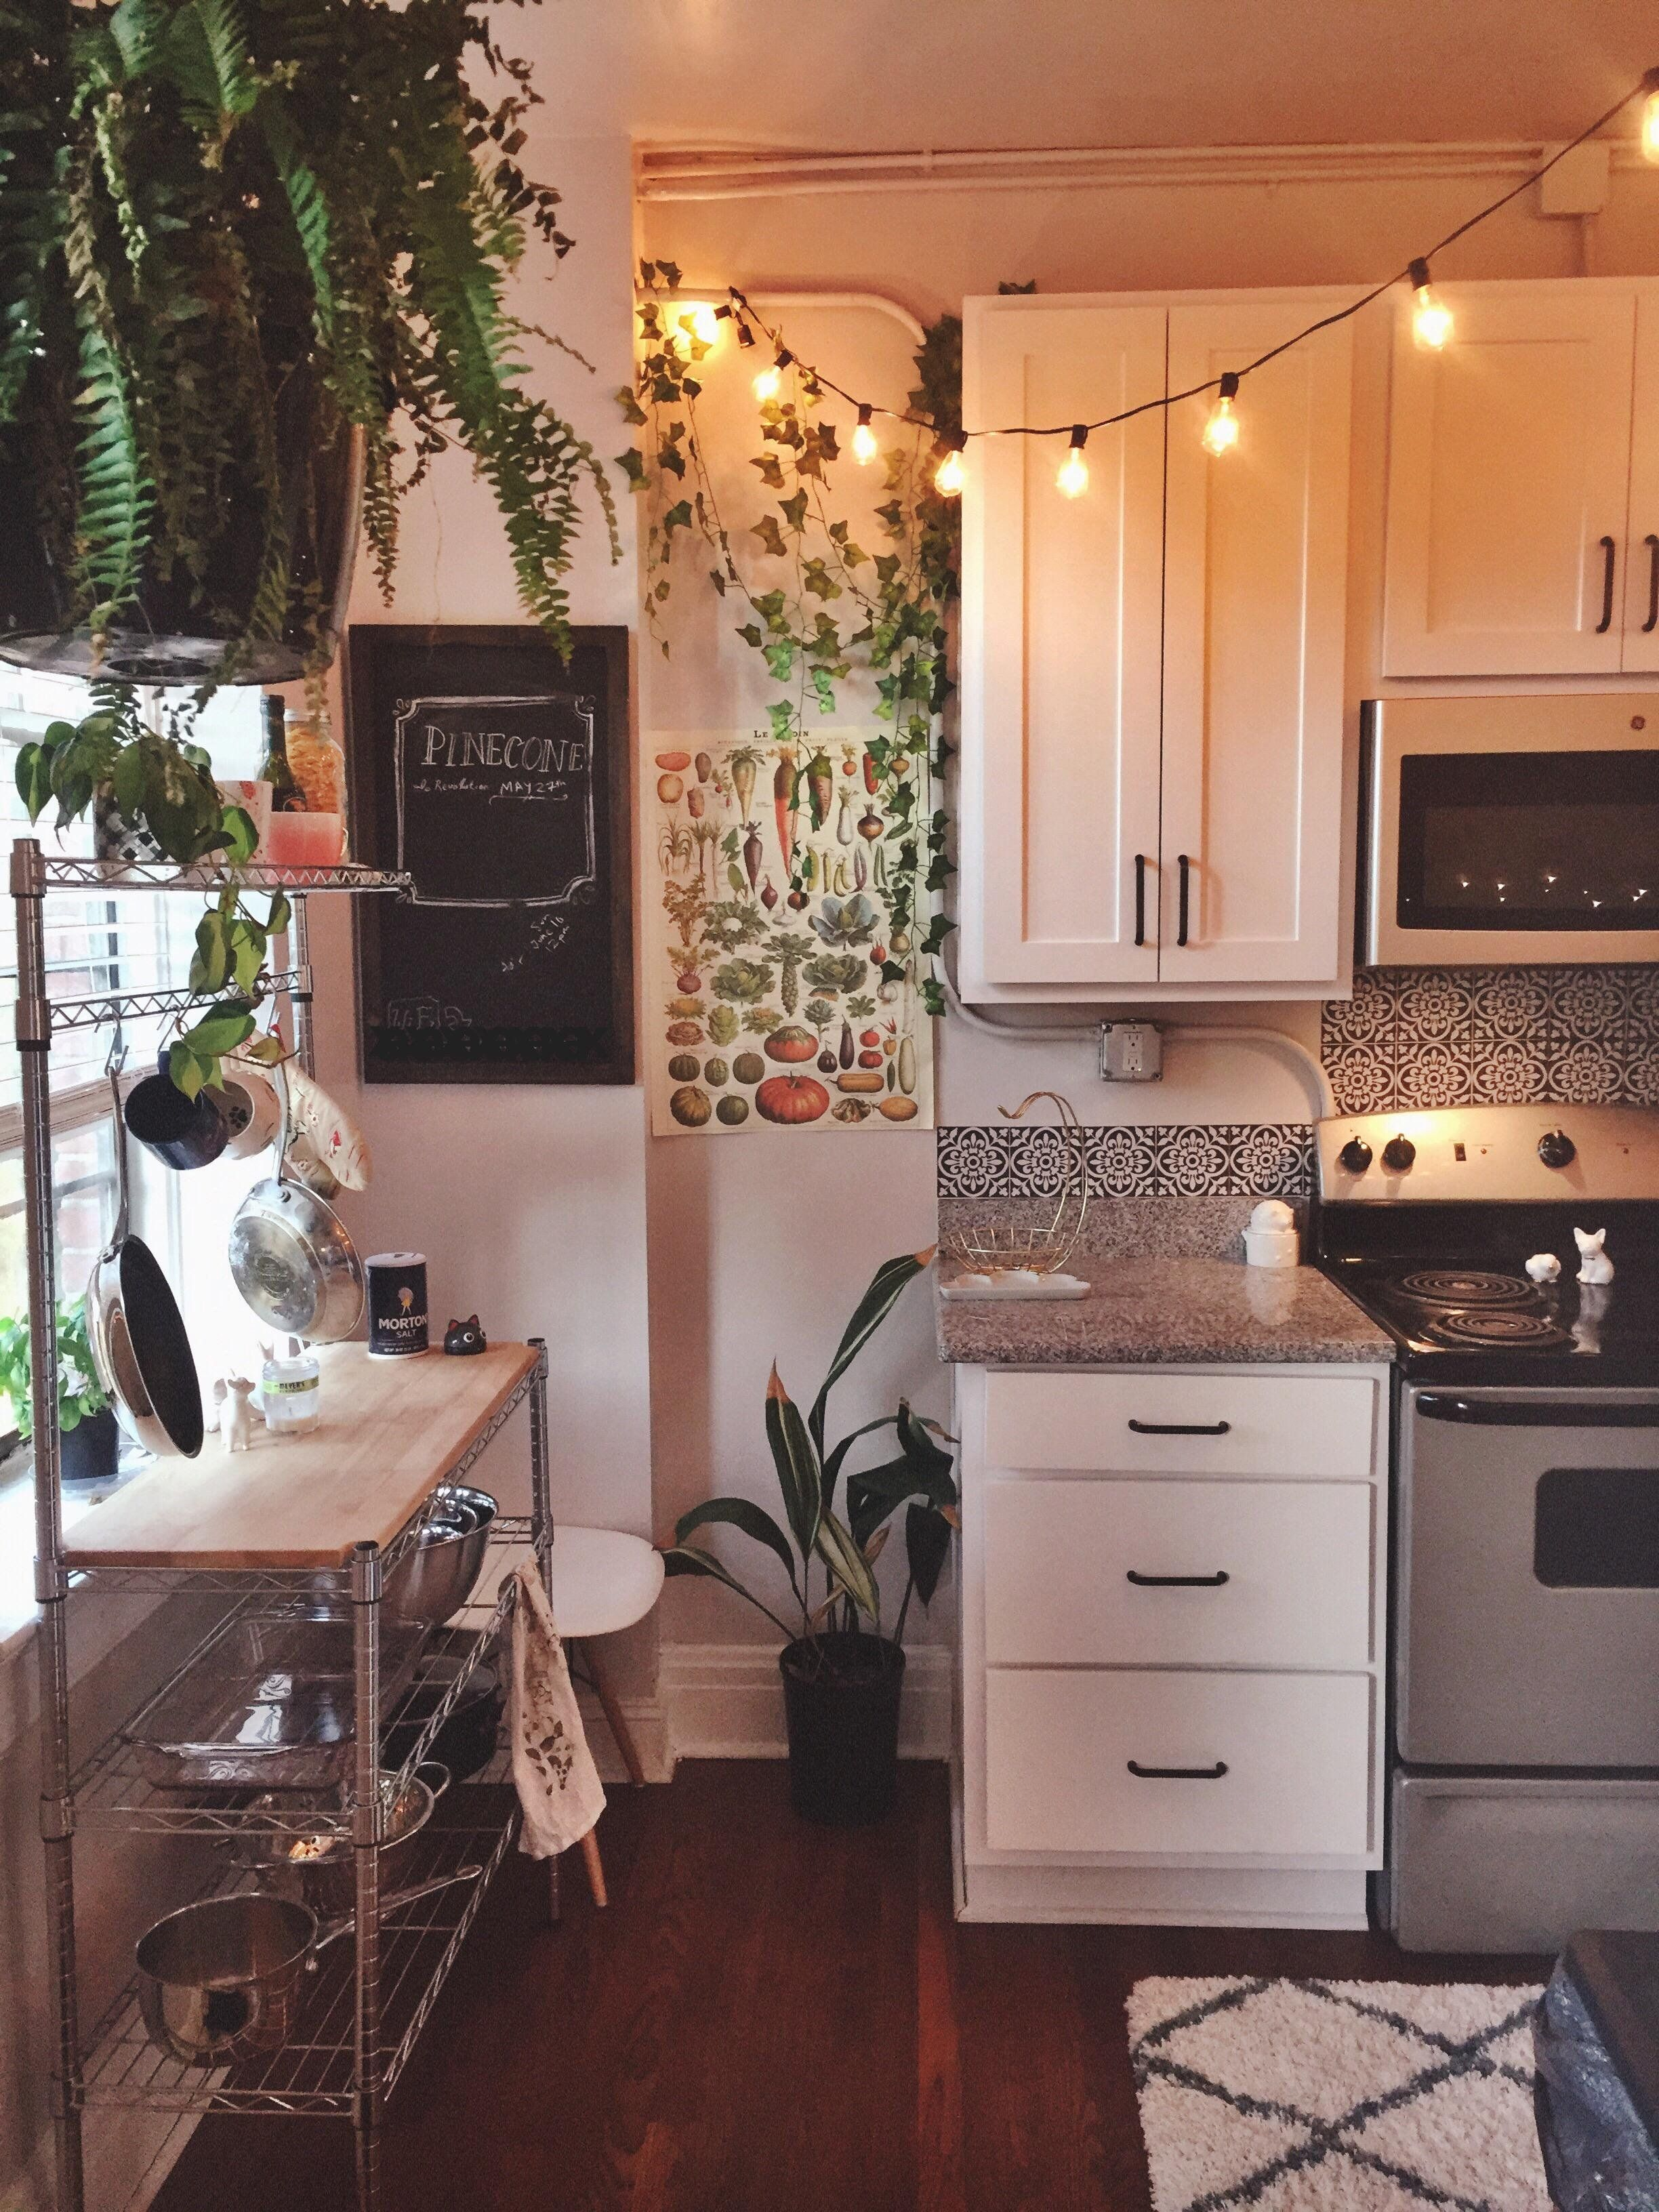 Reddit The Front Page Of The Internet Home Decor Apartment Decor House Interior